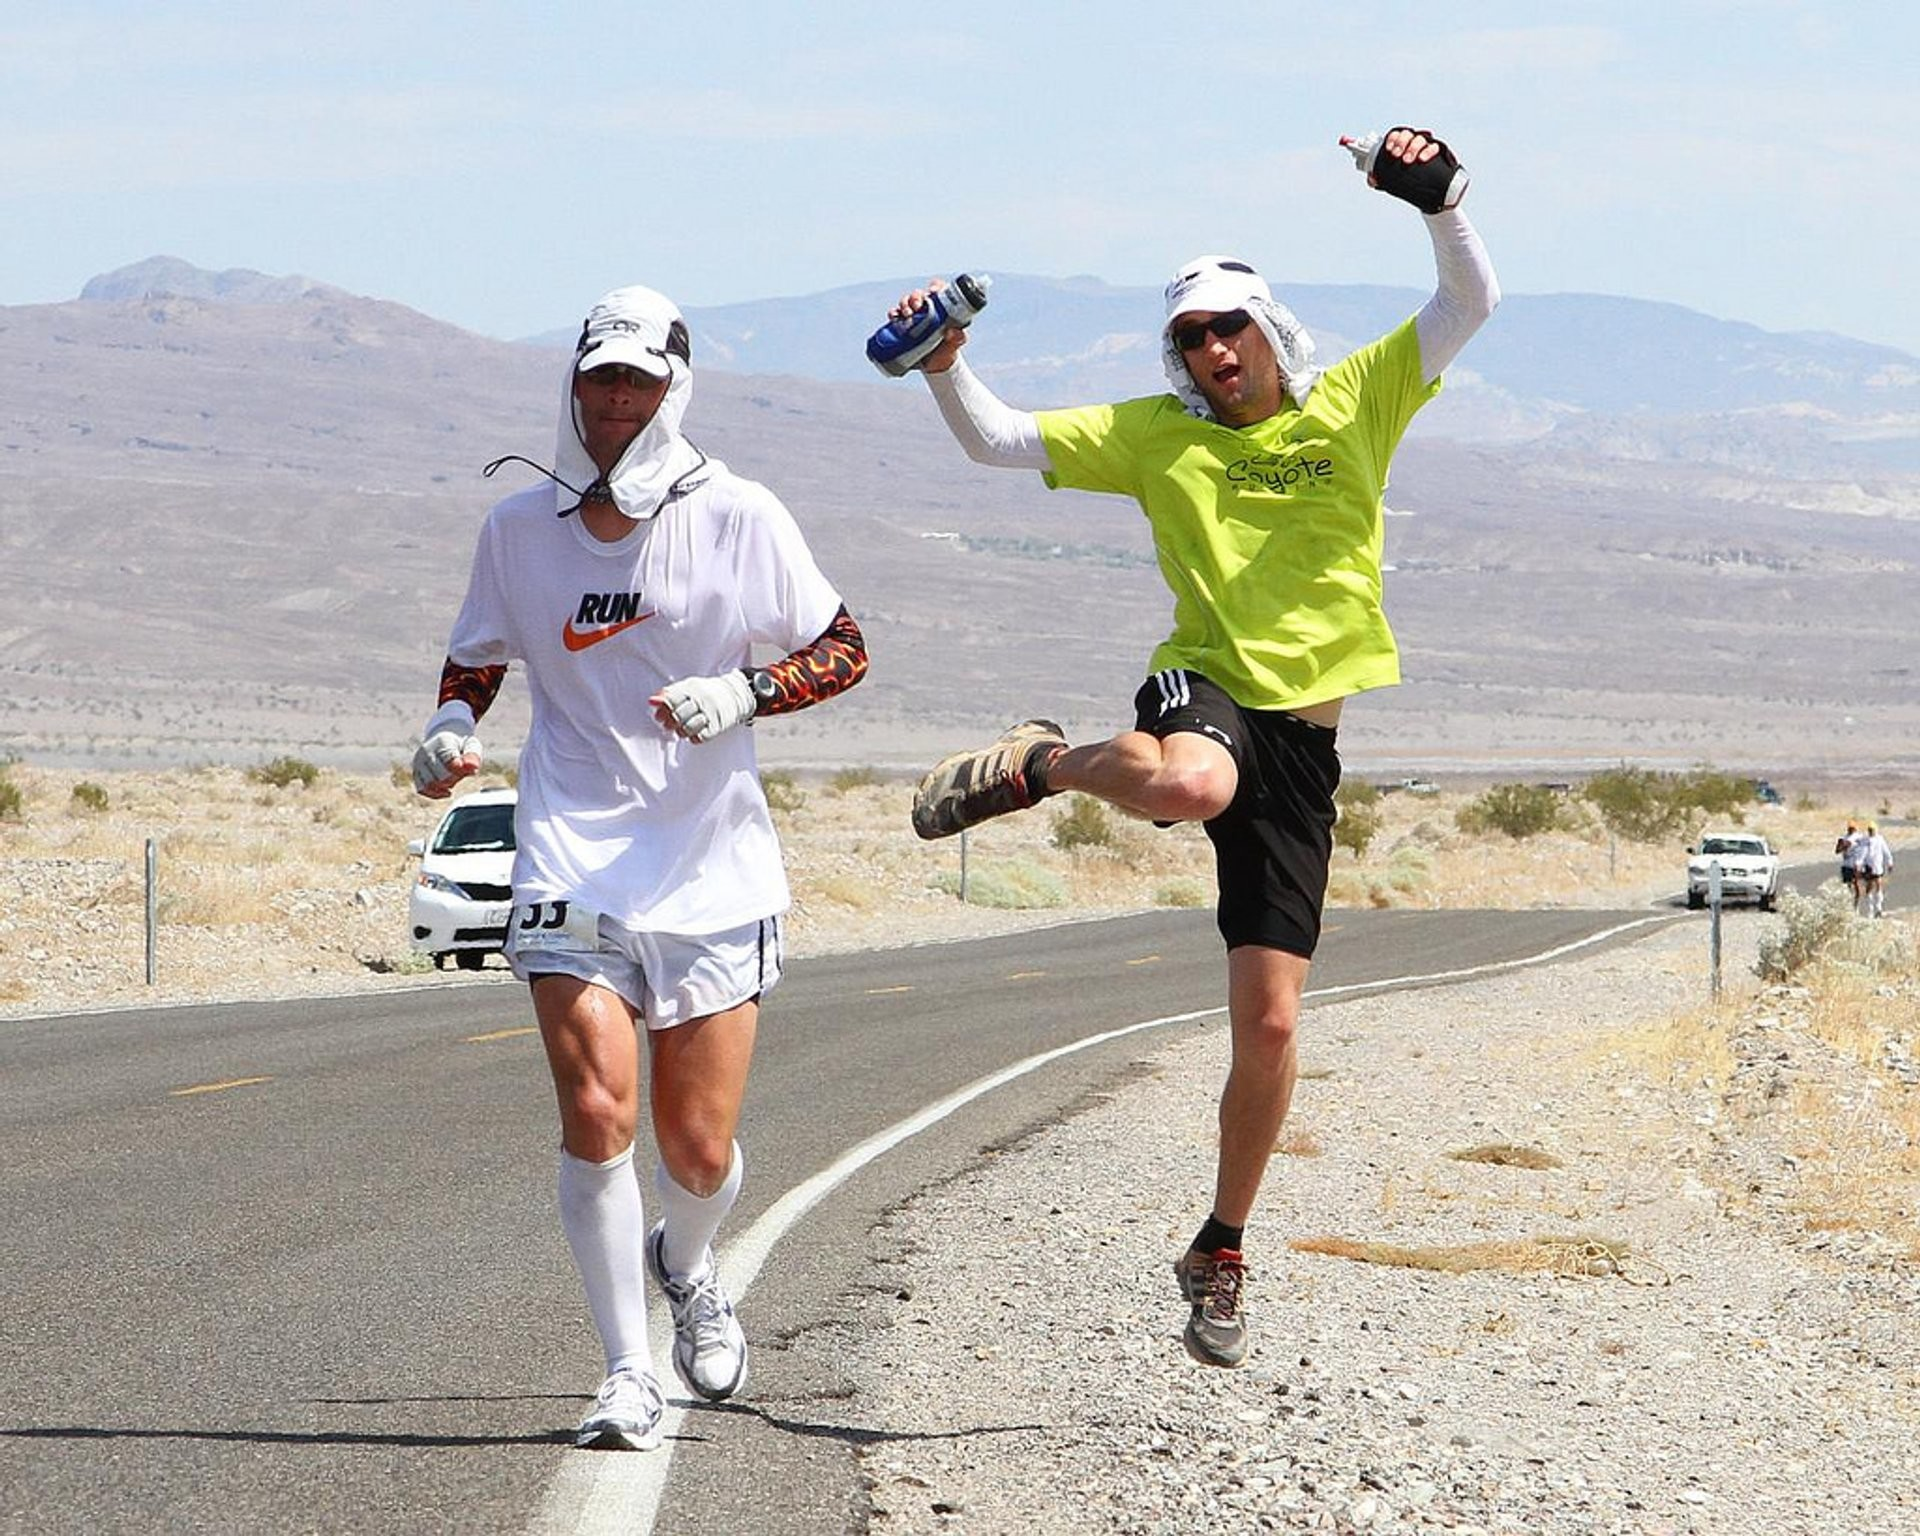 The World's Toughest Foot Race is on and going to be the first race covered by MBR since March 8.  The 43rd annual event is set for July 6-8